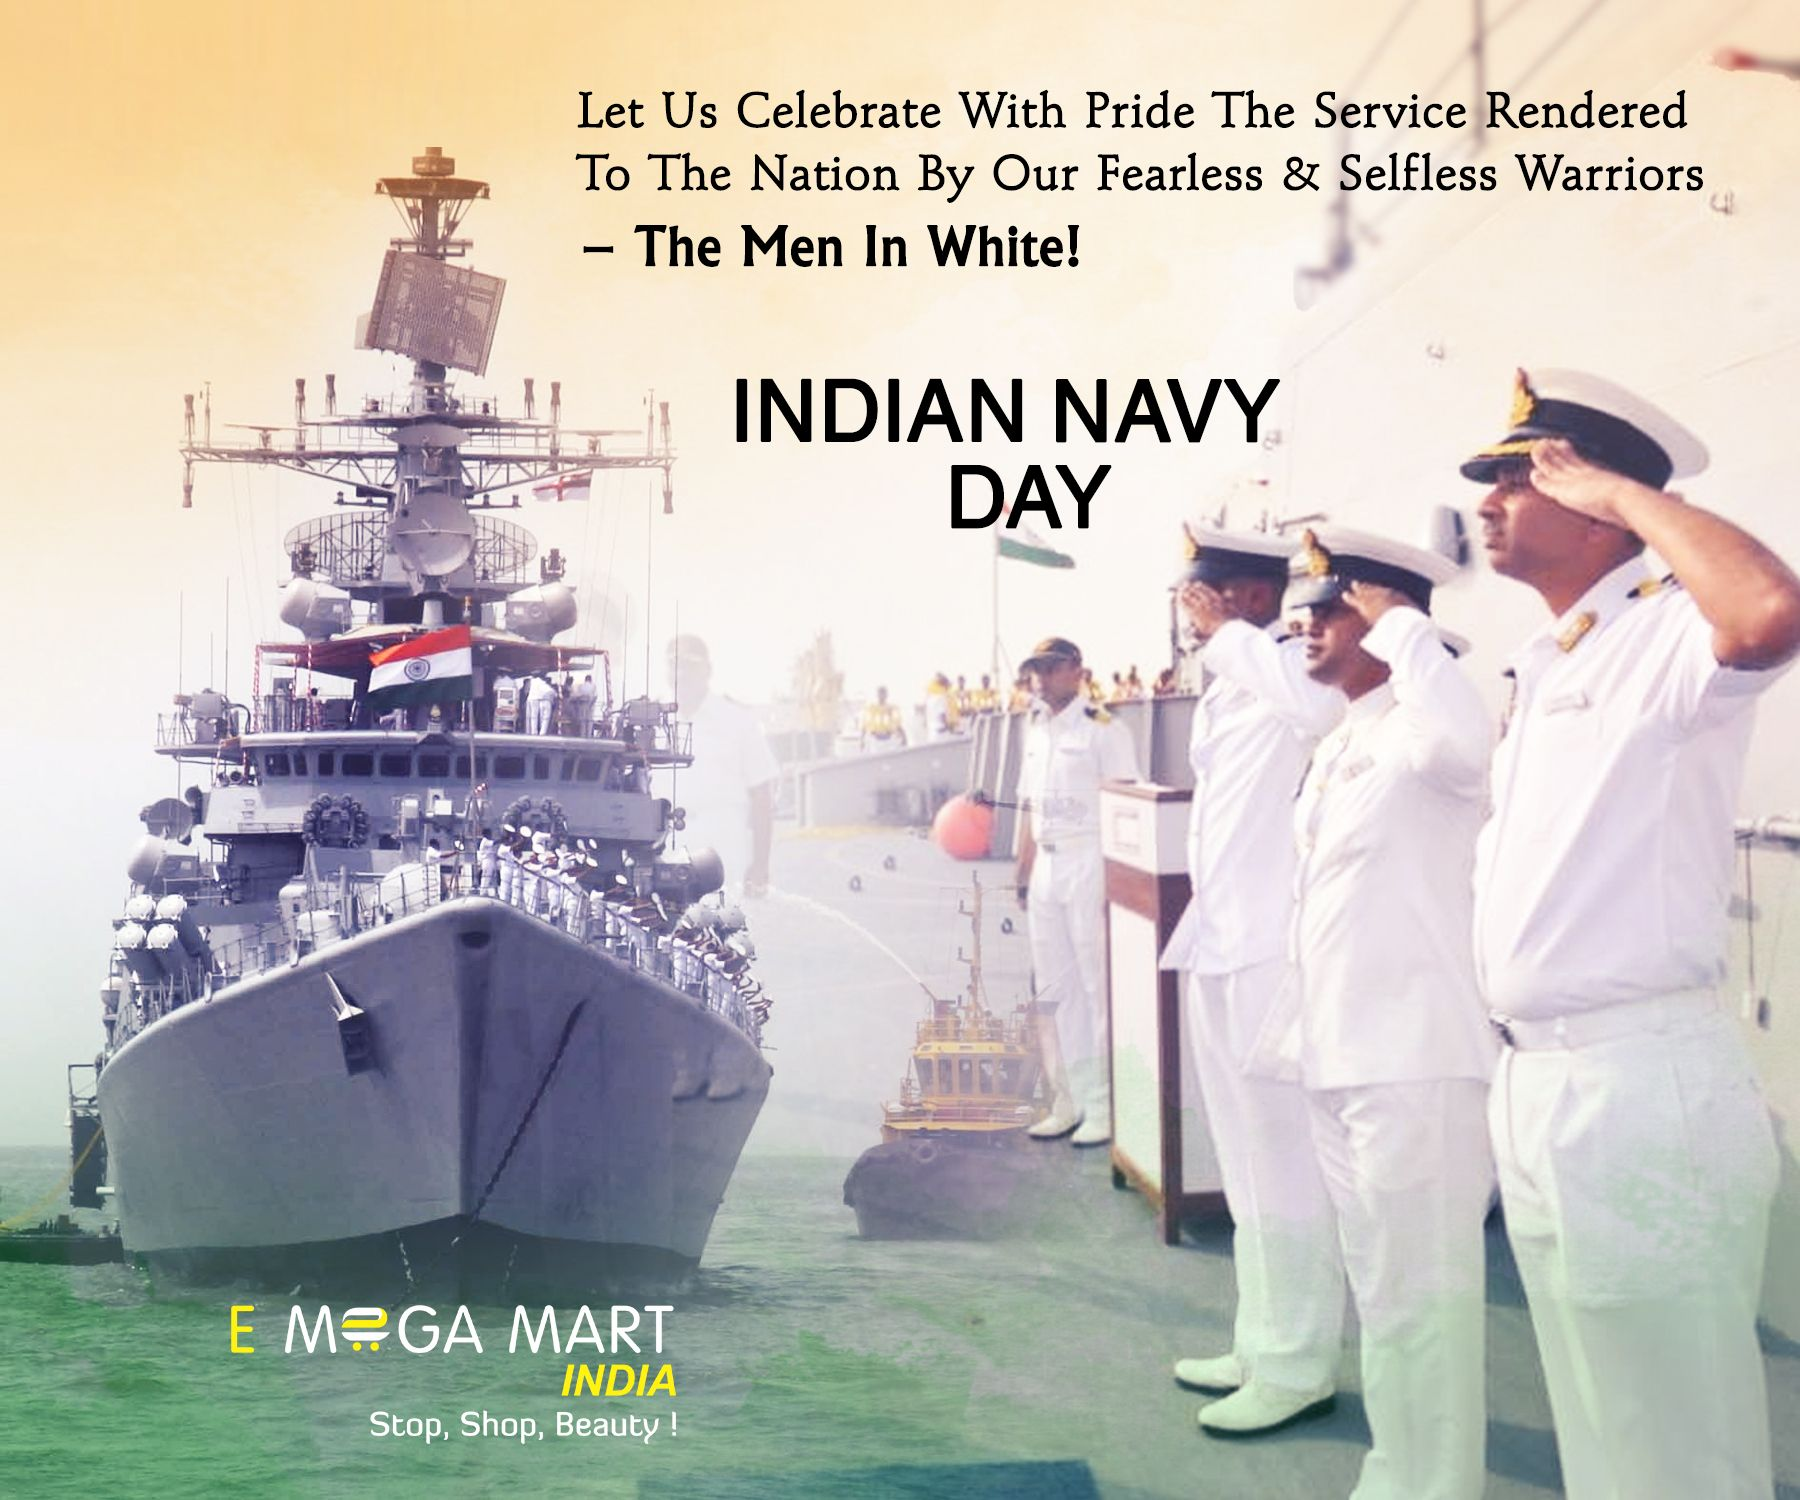 4th Dec Indian Navy Day Indian Navy Day Navy Day Navy Quotes